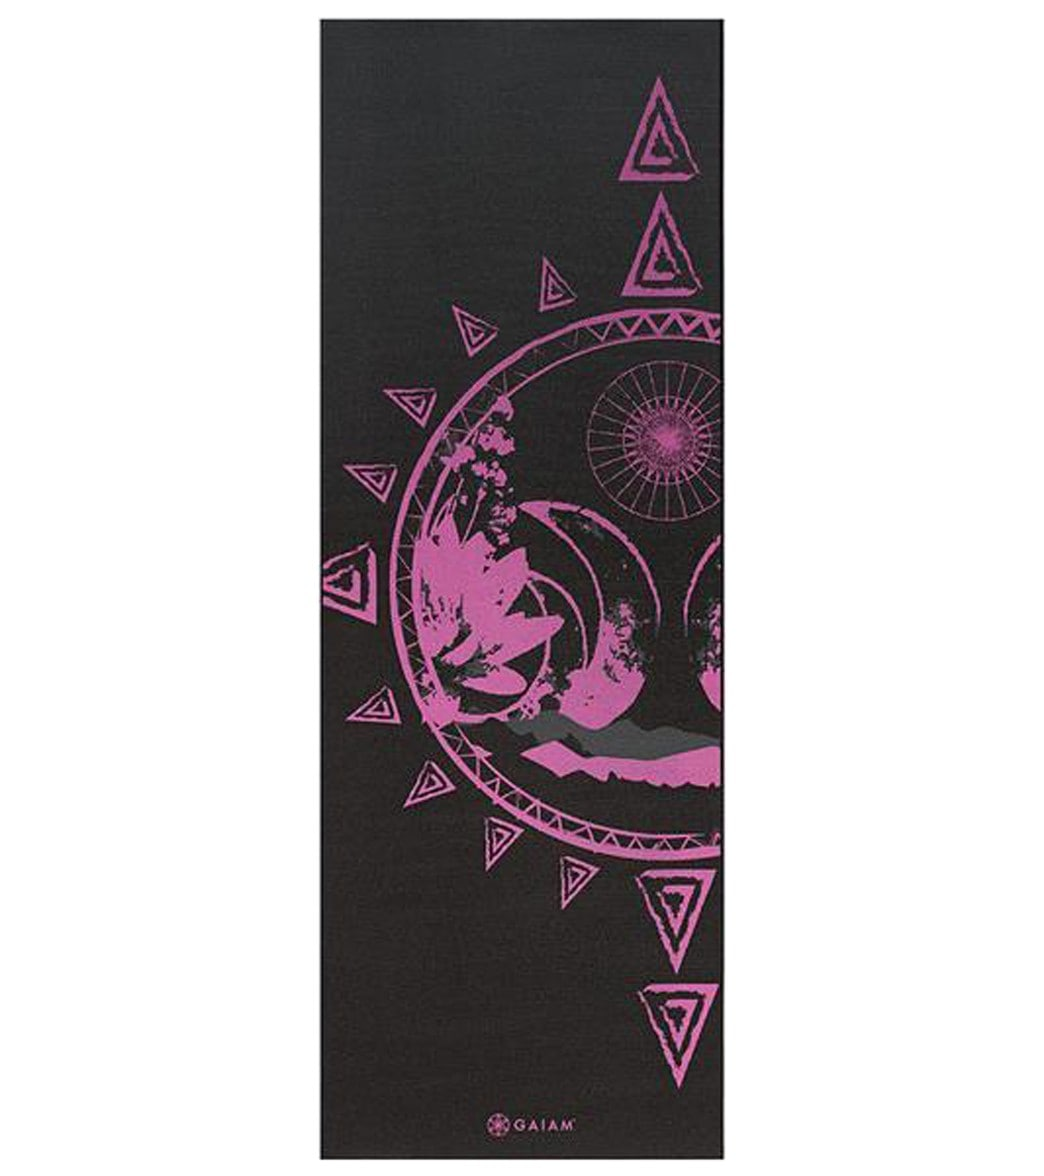 "Gaiam Reversible Be Free Printed Yoga Mat 68"" 6mm Extra"